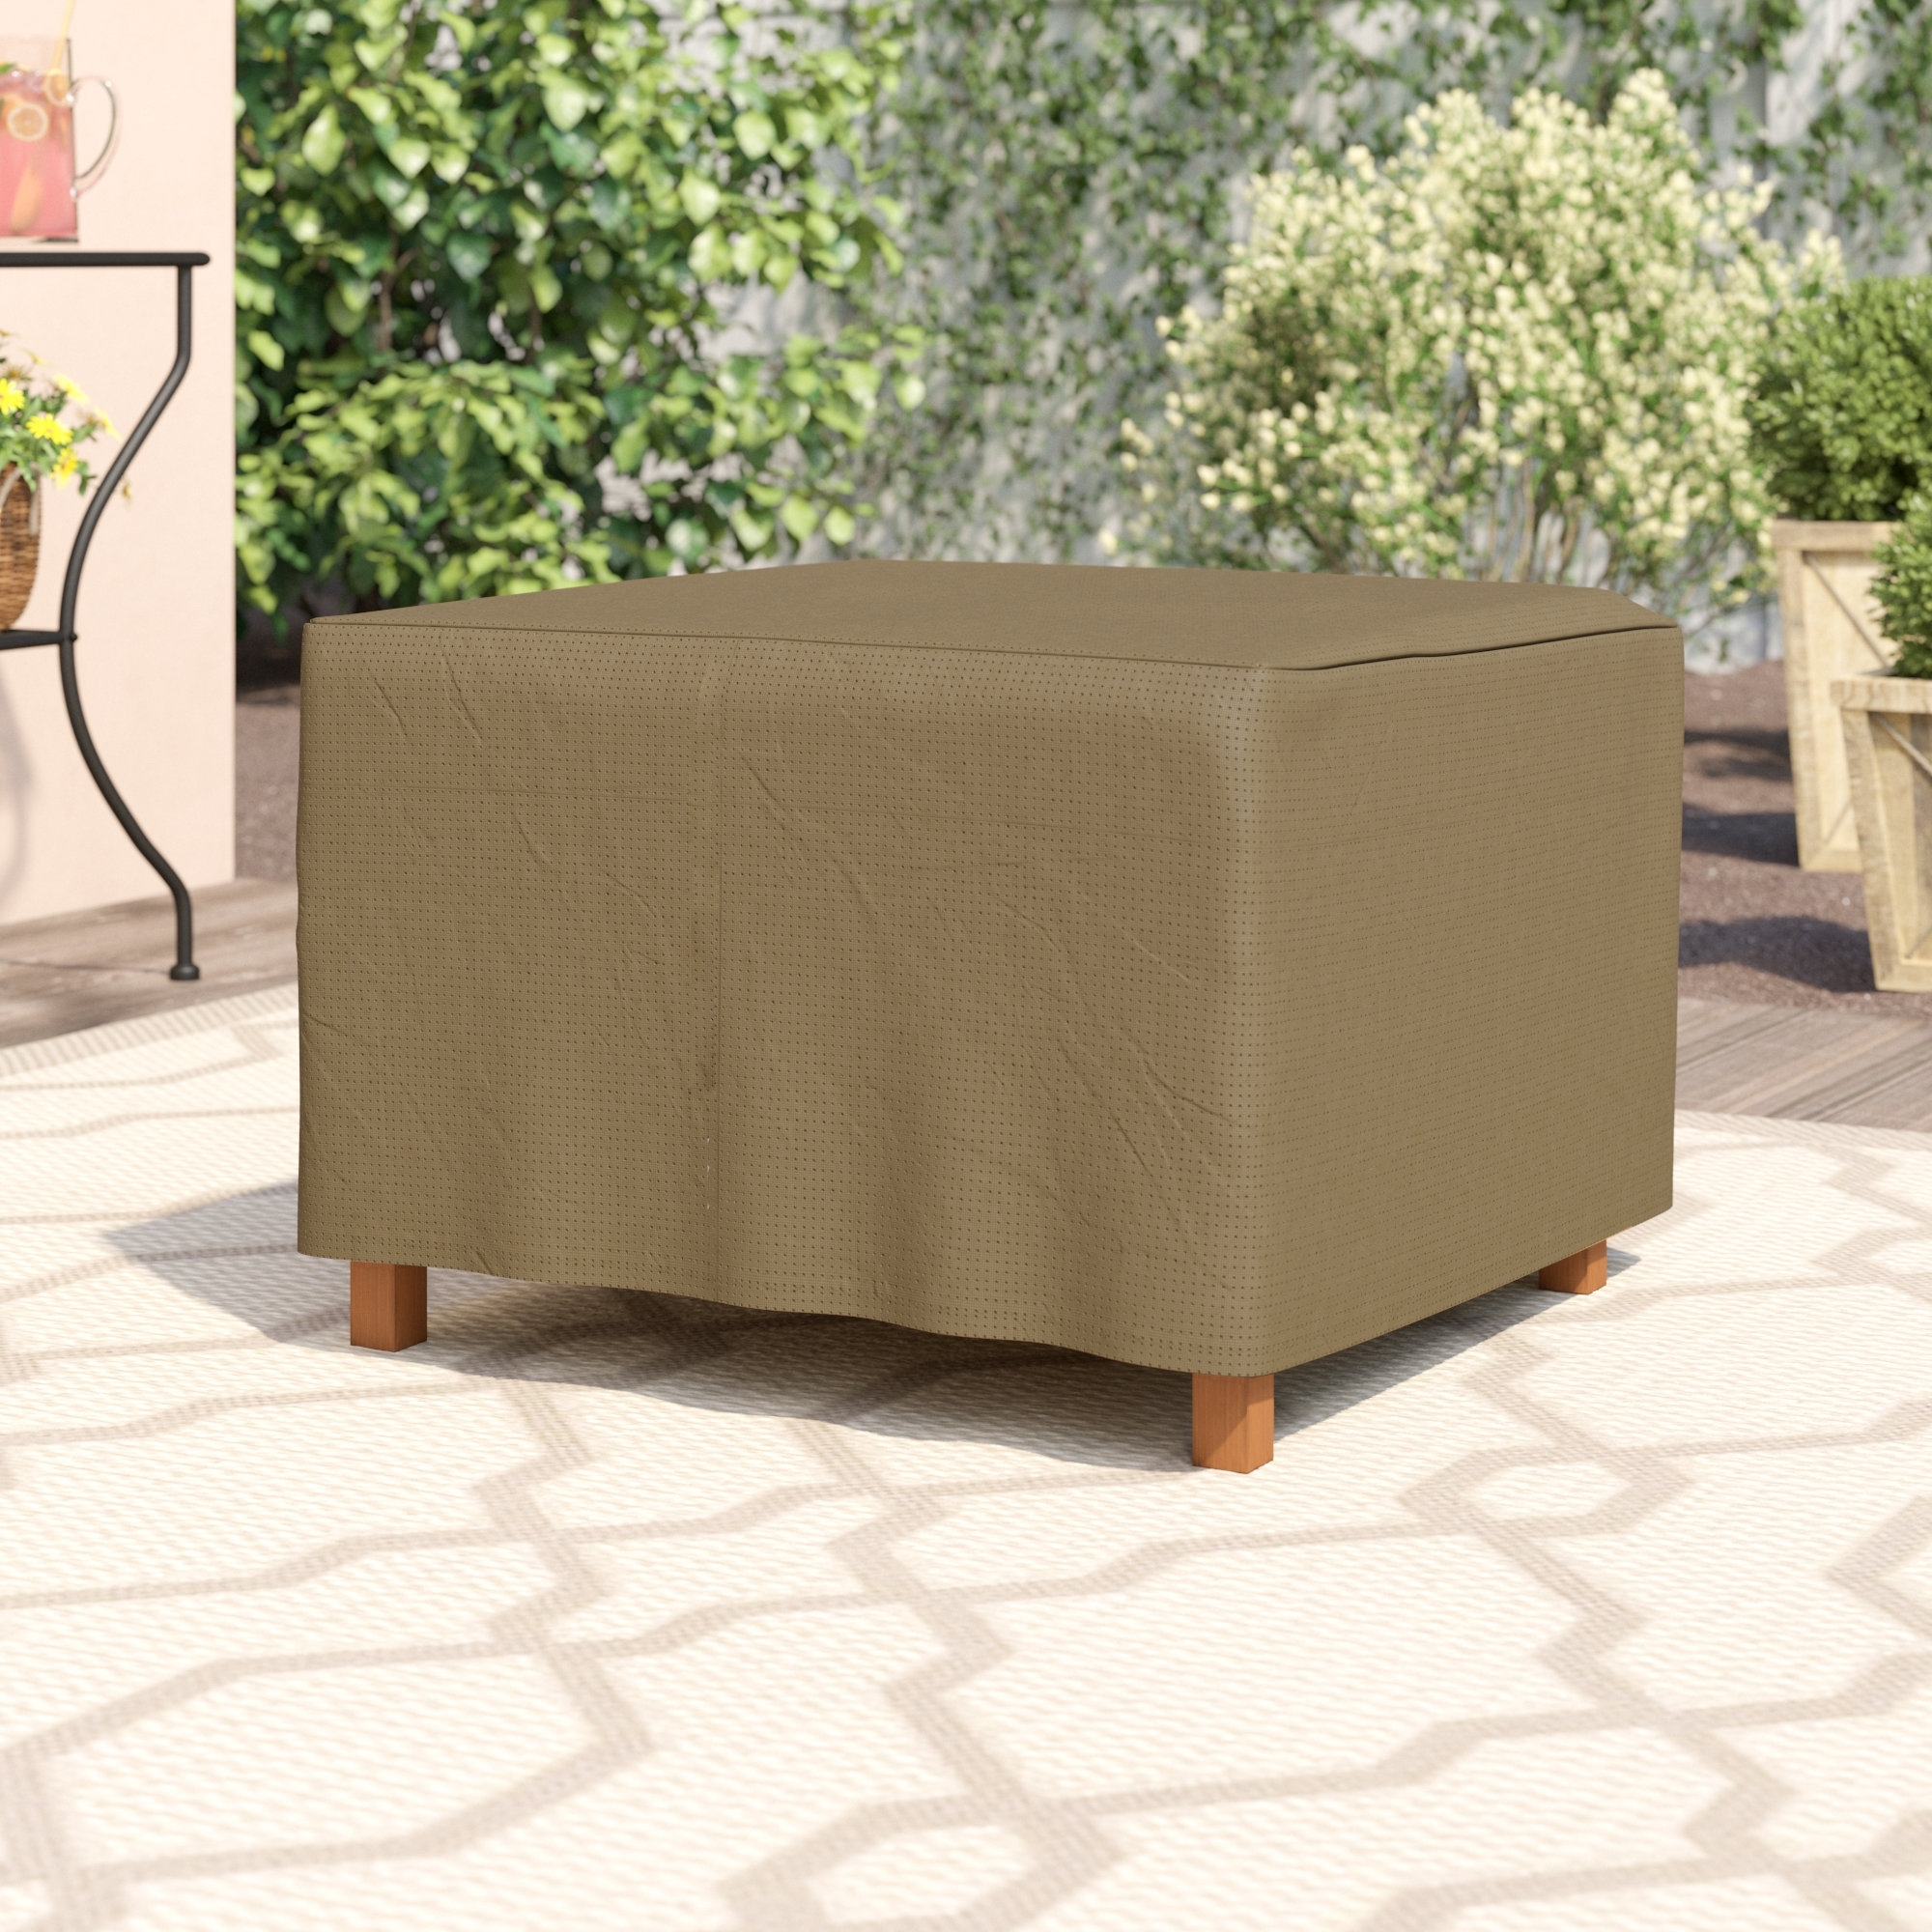 Best And Newest Casbah Coffee Side Tables With Amazing Side Table Cover Casbah Coffee Review C H Cloth With Fabric (View 20 of 20)